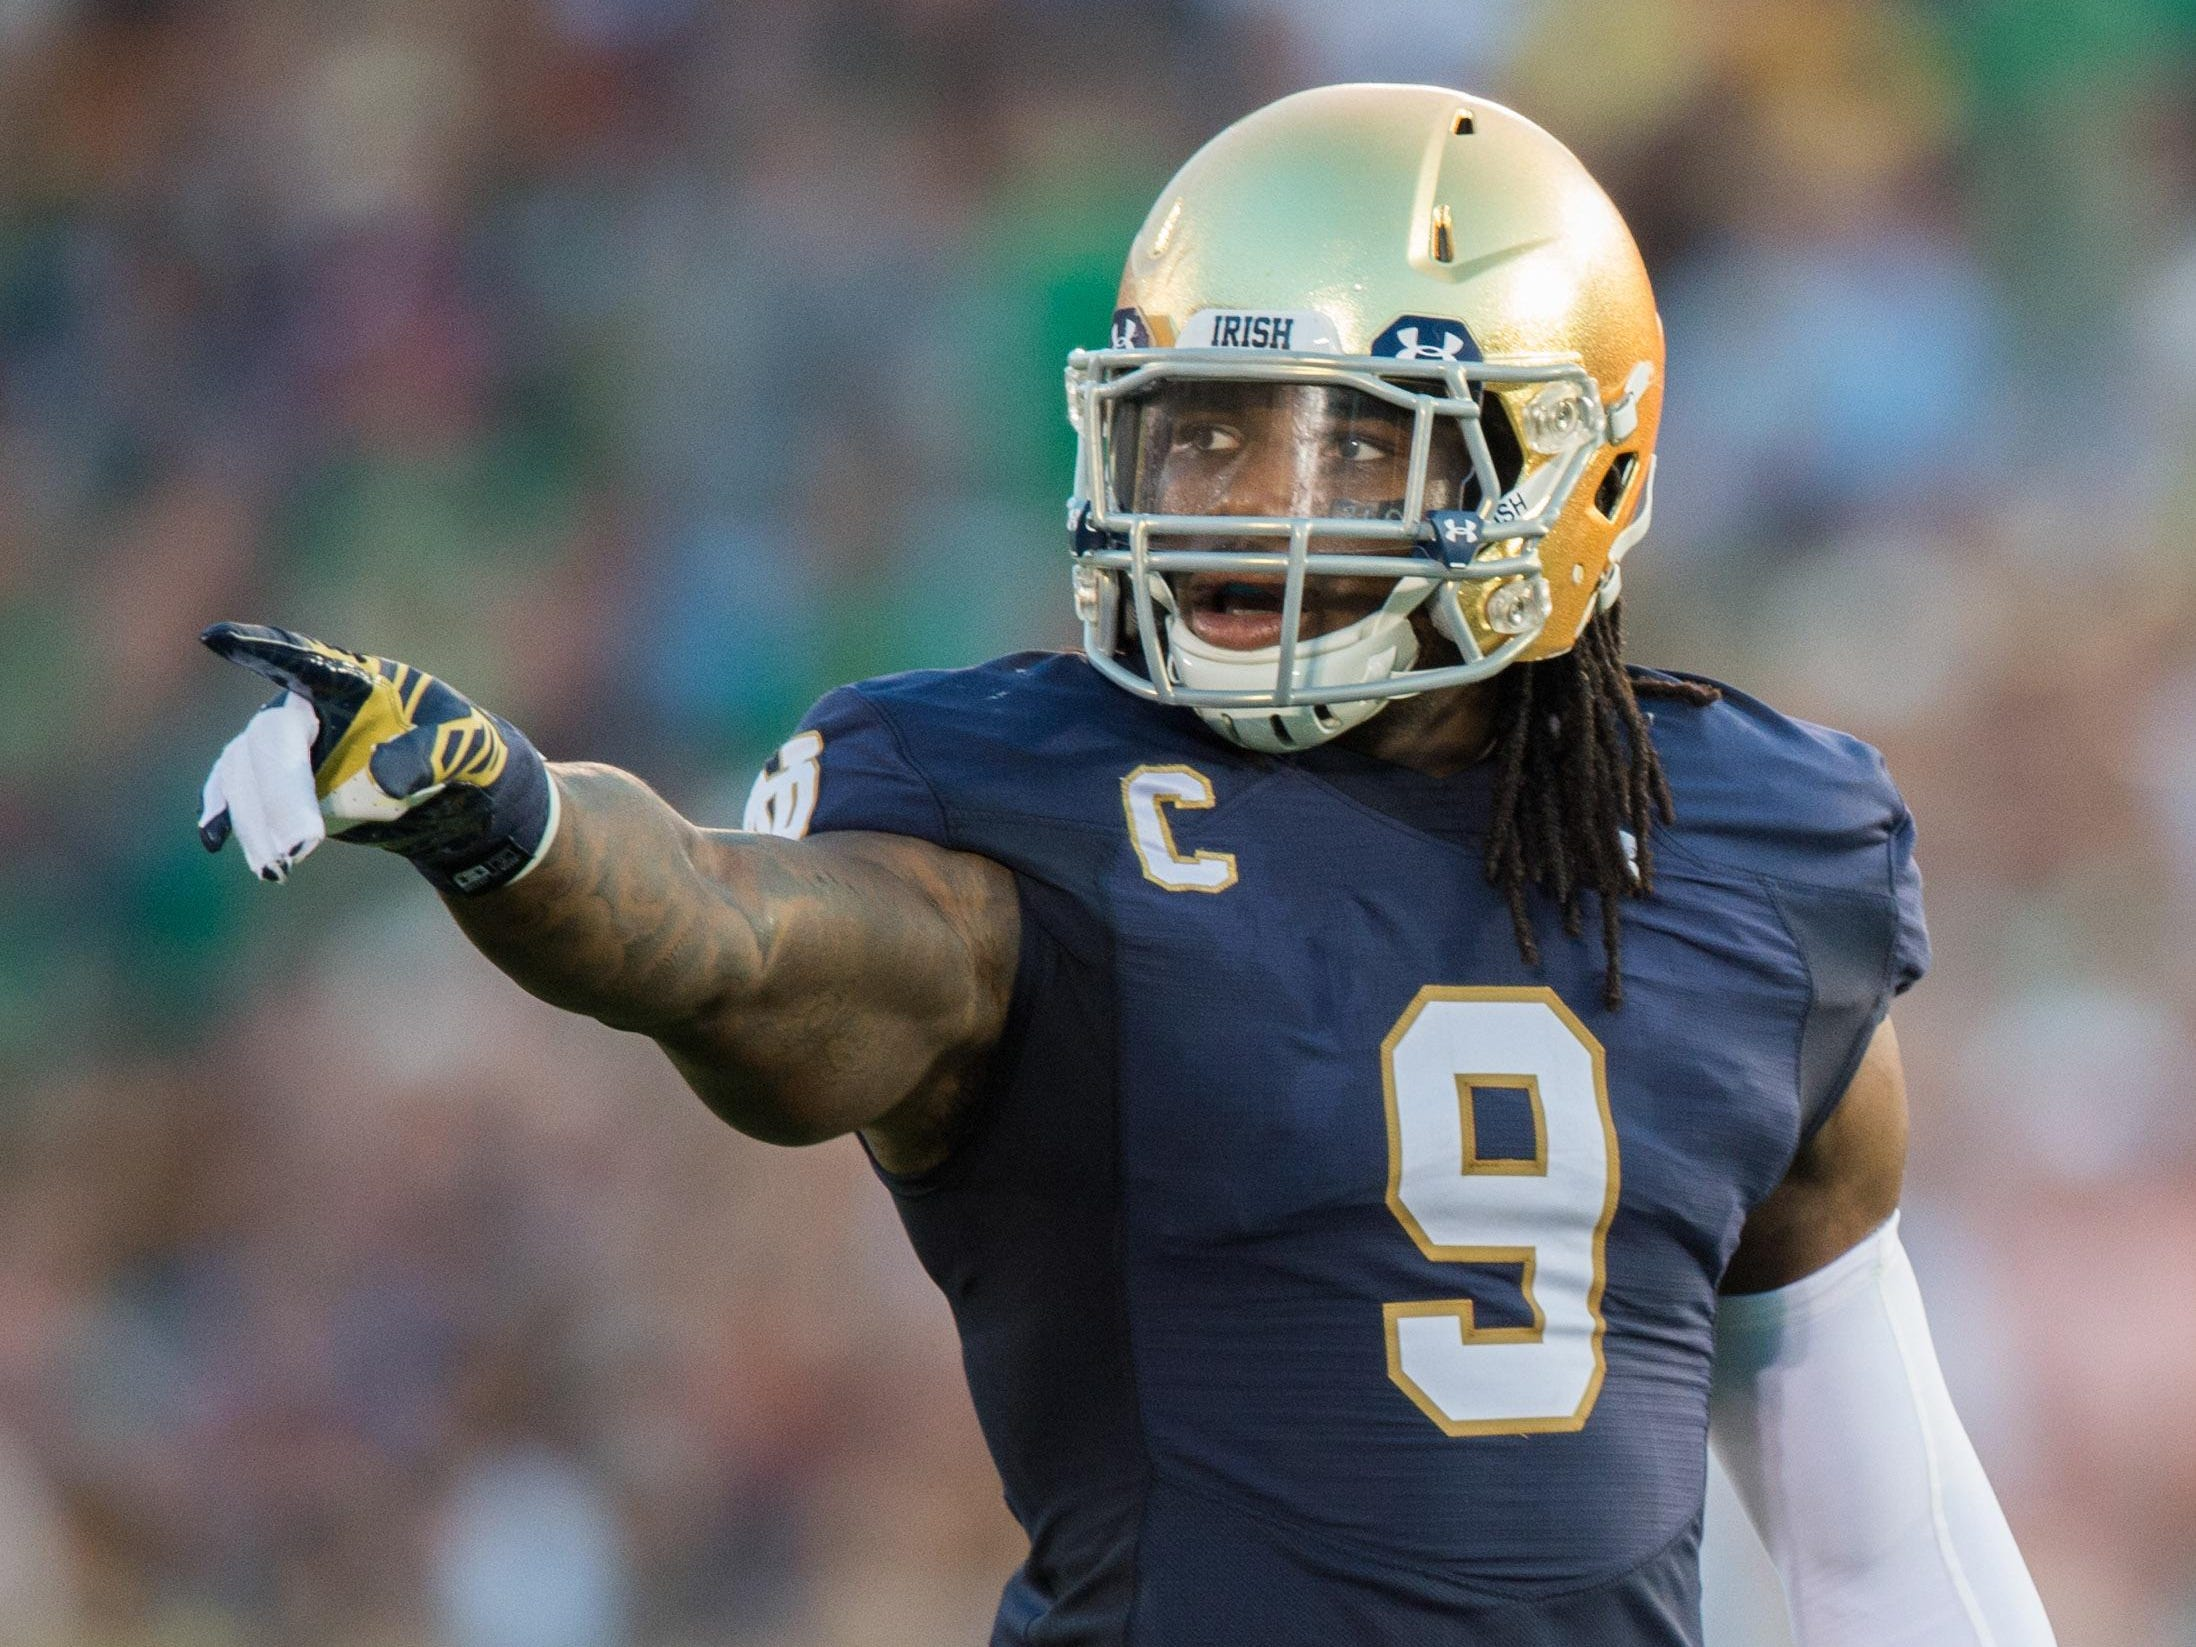 Sep 5, 2015; South Bend, IN, USA; Notre Dame Fighting Irish linebacker Jaylon Smith (9) signals in the first quarter against the Texas Longhorns at Notre Dame Stadium. Notre Dame won 38-3. Mandatory Credit: Matt Cashore-USA TODAY Sports